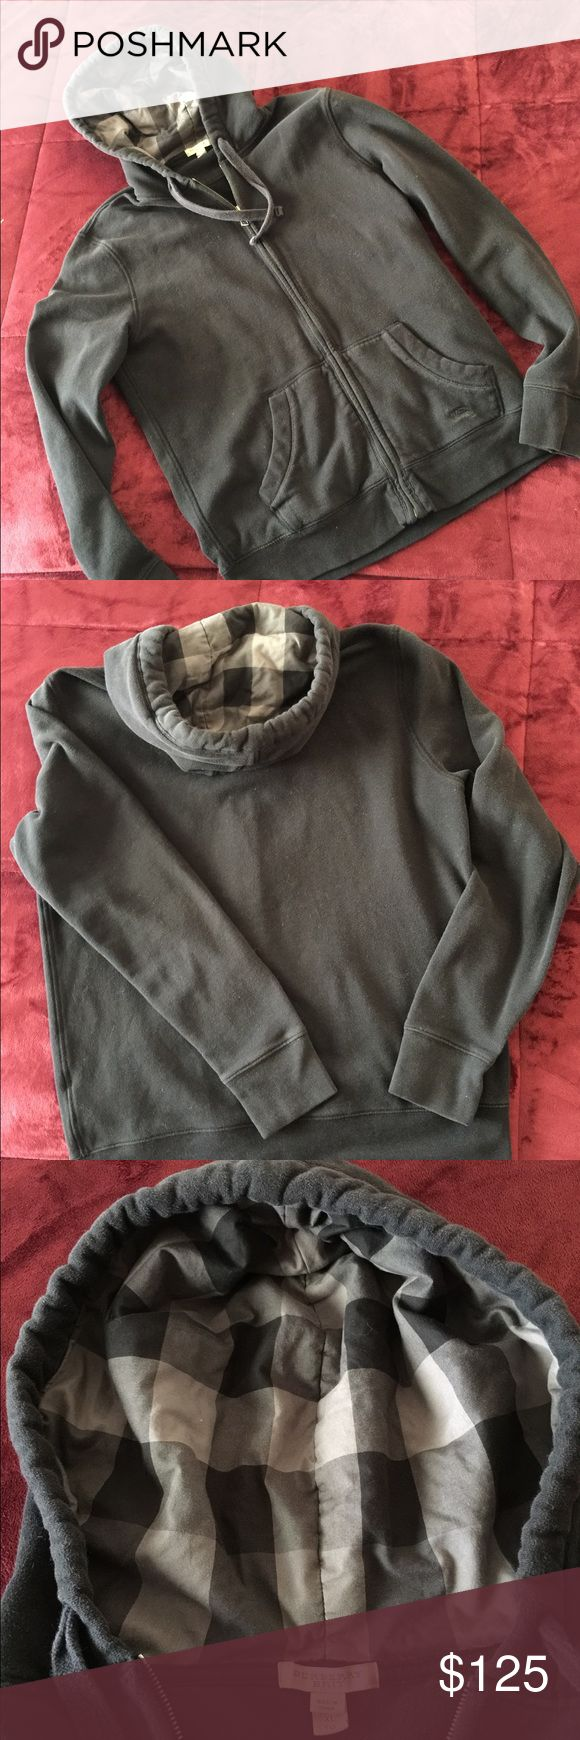 "Burberry Brit Men's Black Hooded Sweatshirt 176. This is the sweatshirt you have been wanting! It is now within your reach! It is in excellent preowned condition with no tears or flaws. It has been washed several times and will look good for years! The quality is obvious. It has the icon on front pocket and is made of soft Cotton and Polyester. The hood is lined and puffy and is gray and black wide plaid. It is cool! Impress your friends!  The measurements are slim 22"" across chest pit to…"